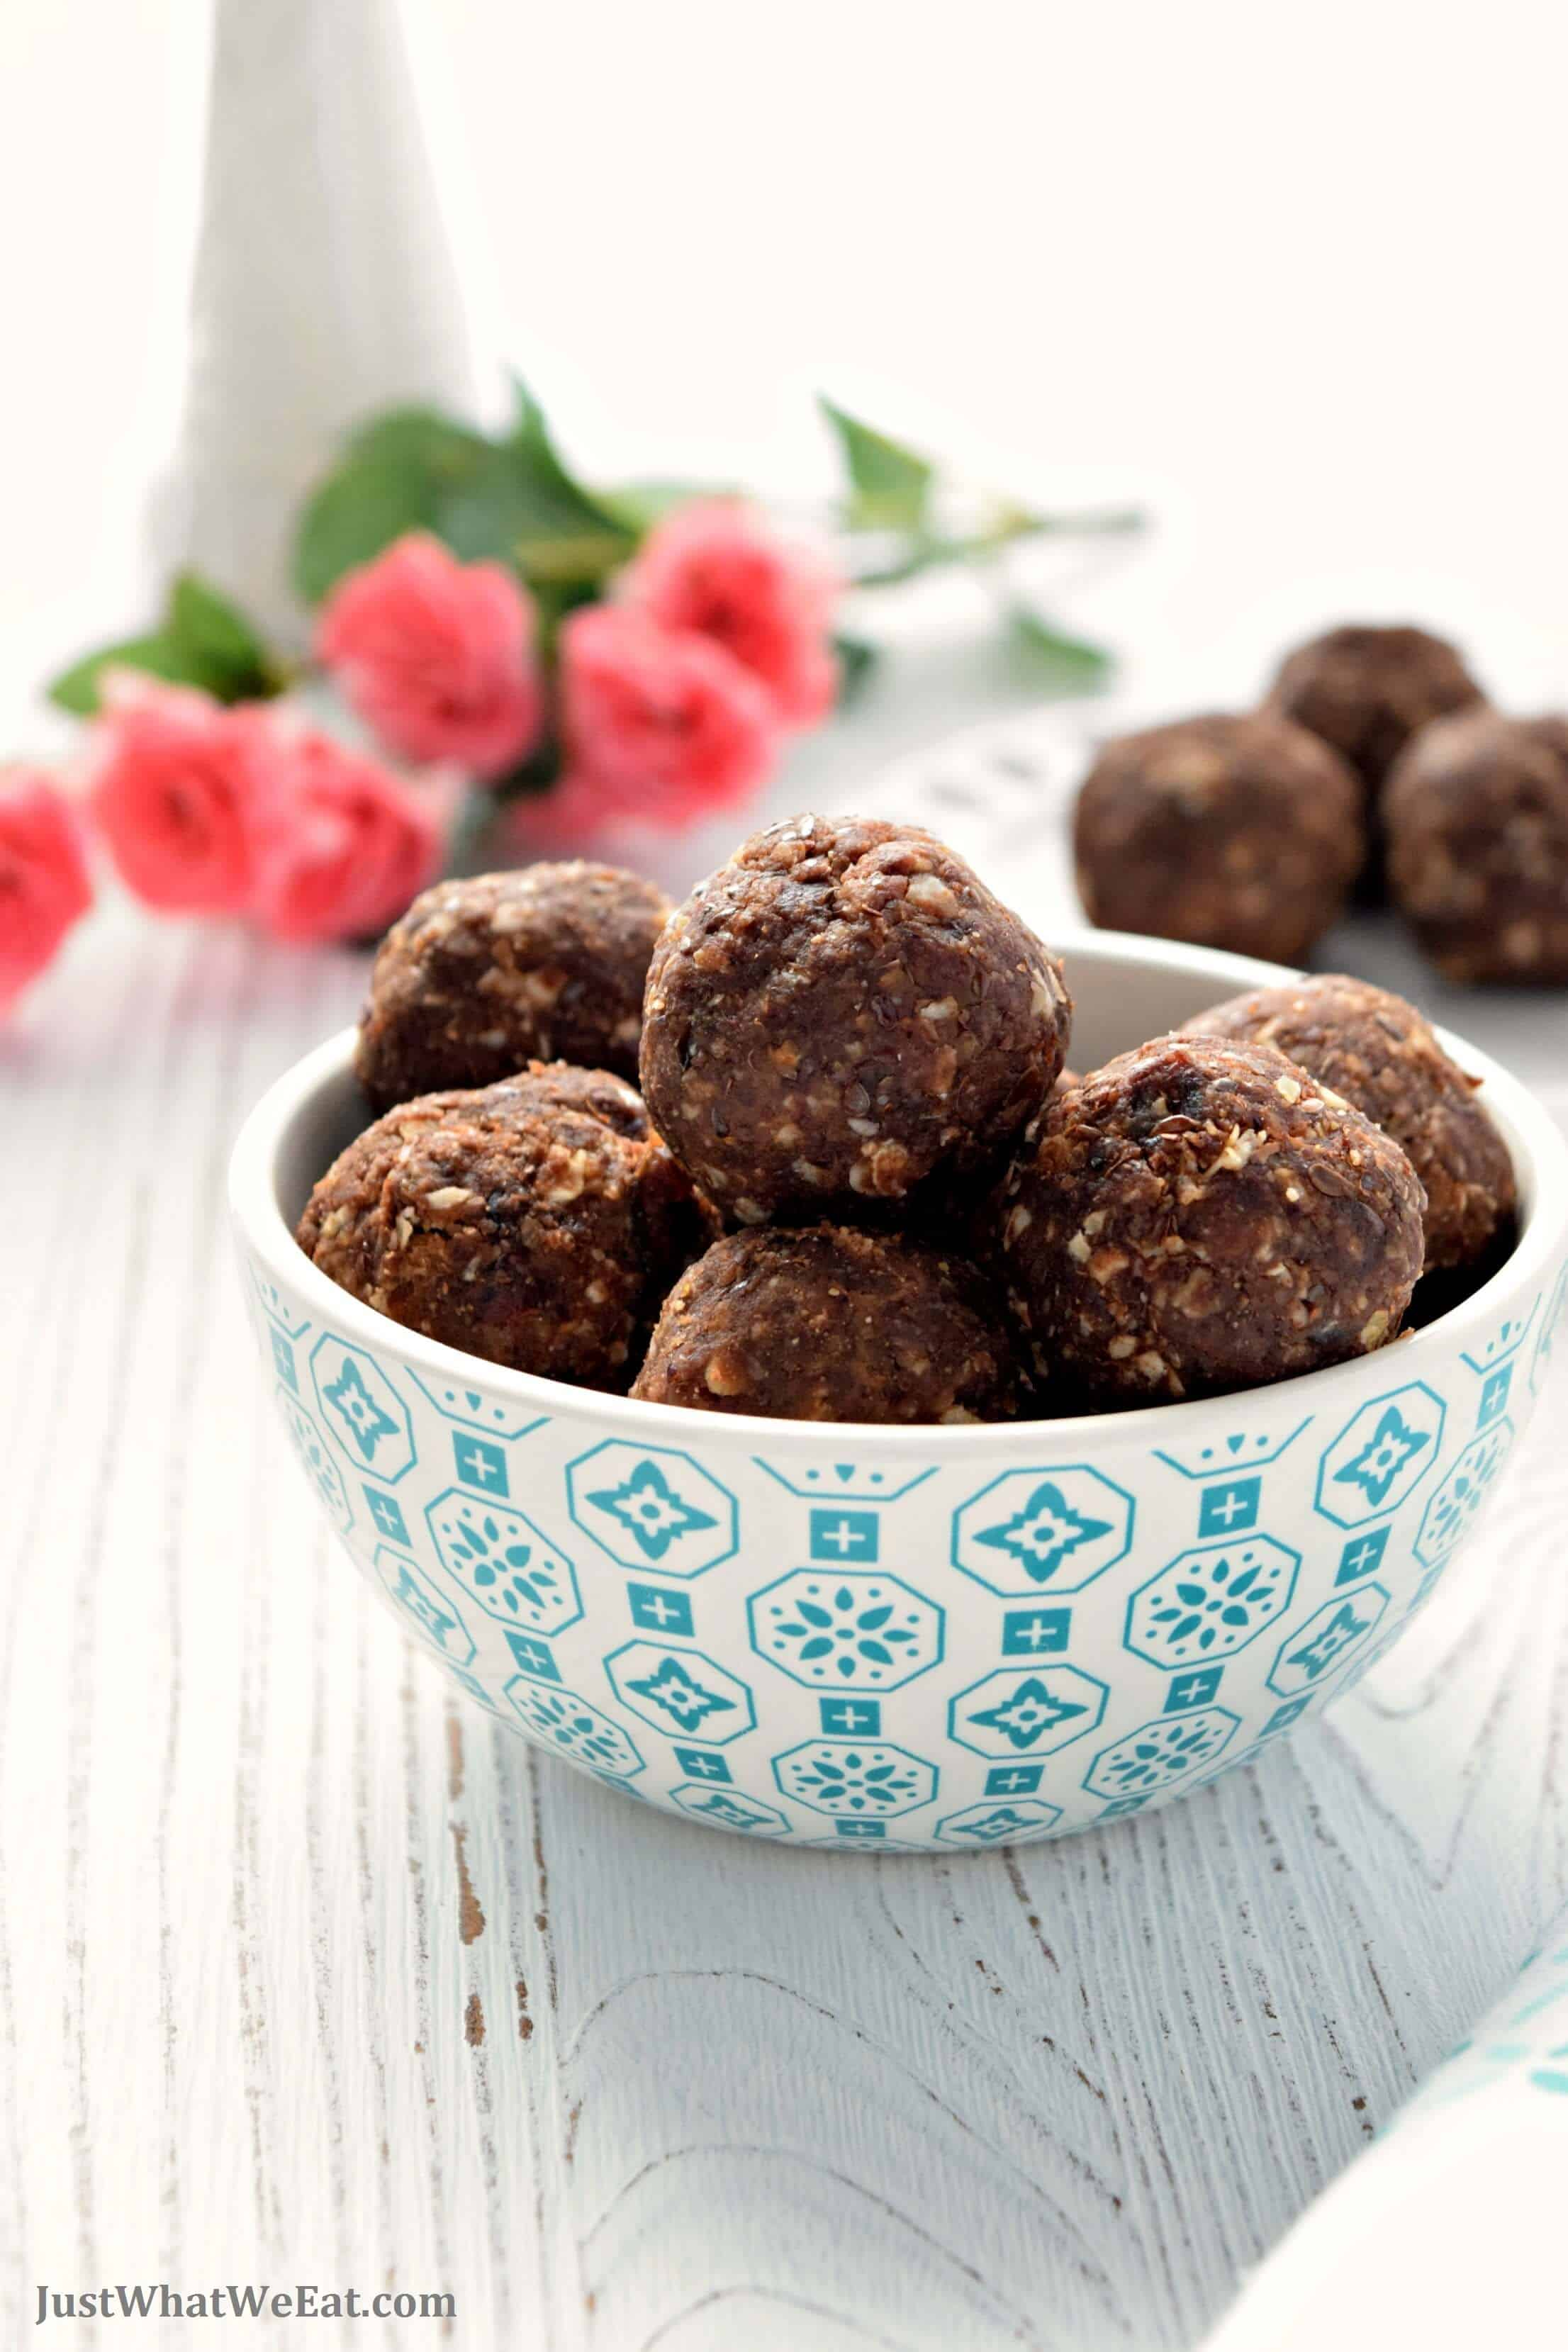 Chocolate Peanut Butter Energy Bites - Gluten Free, Vegan, Refined Sugar Free